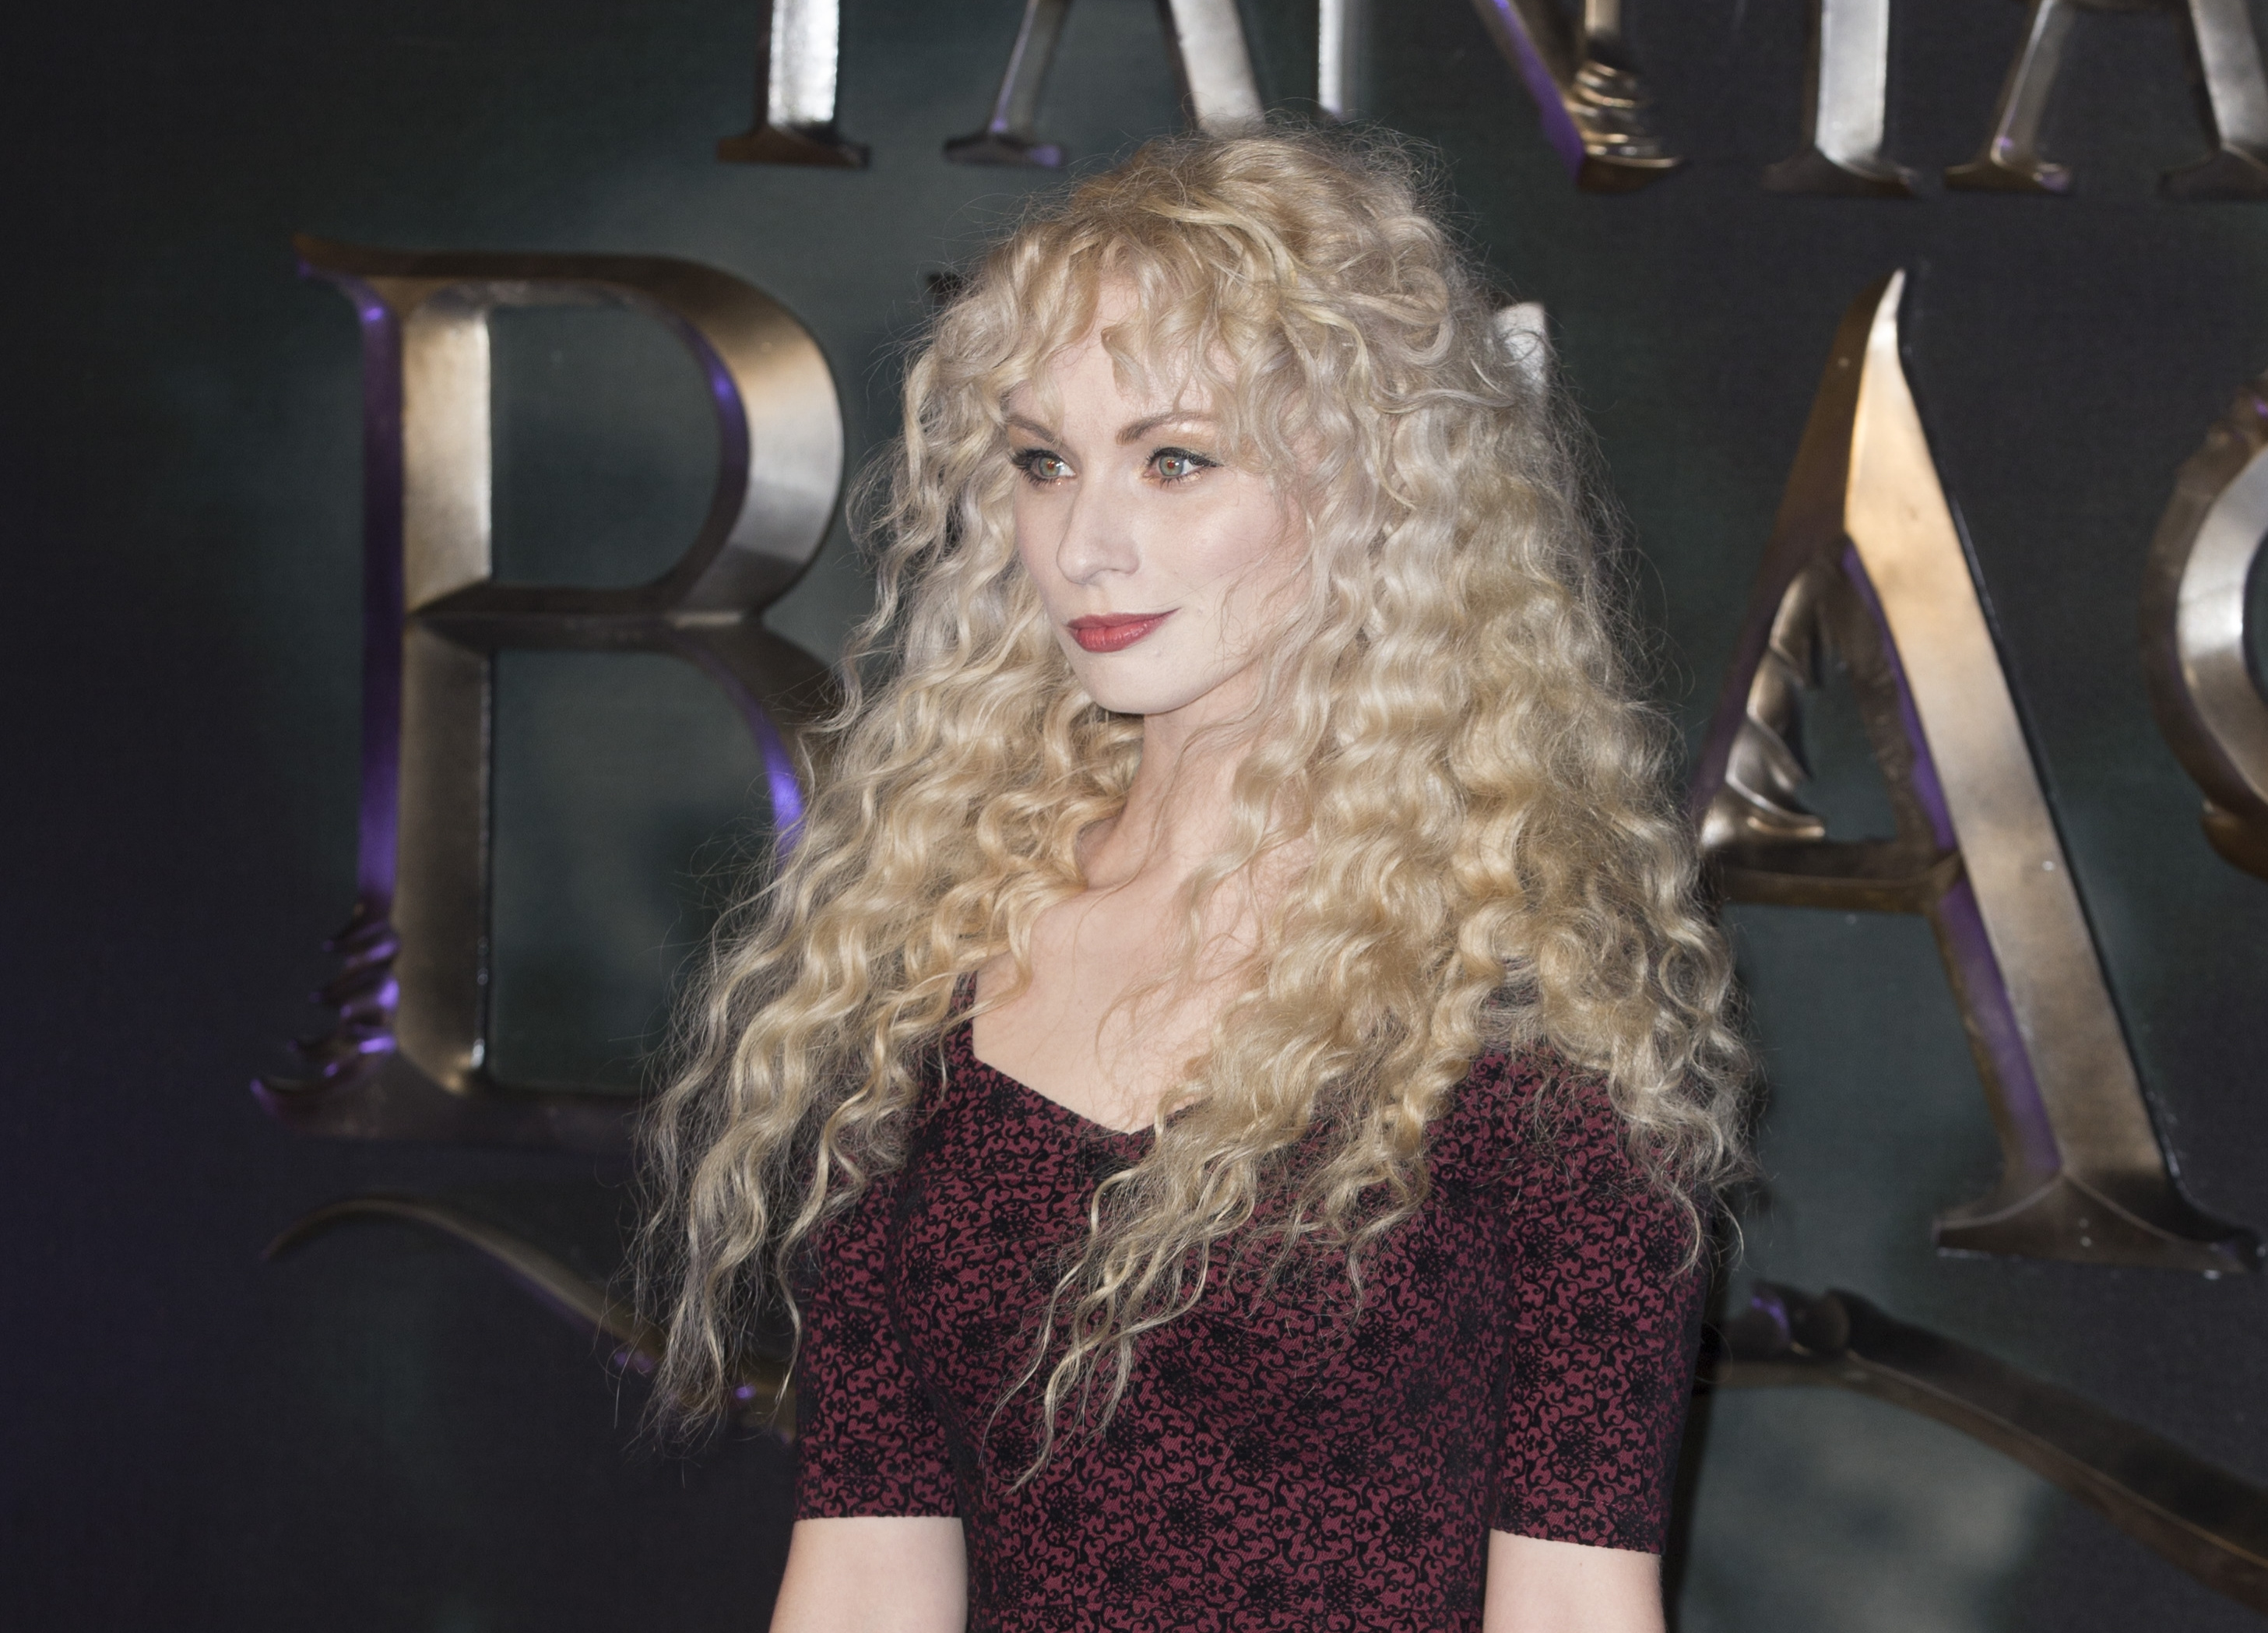 Singer-songwriter, Emmi at the European Premiere of Fantastic Beasts.